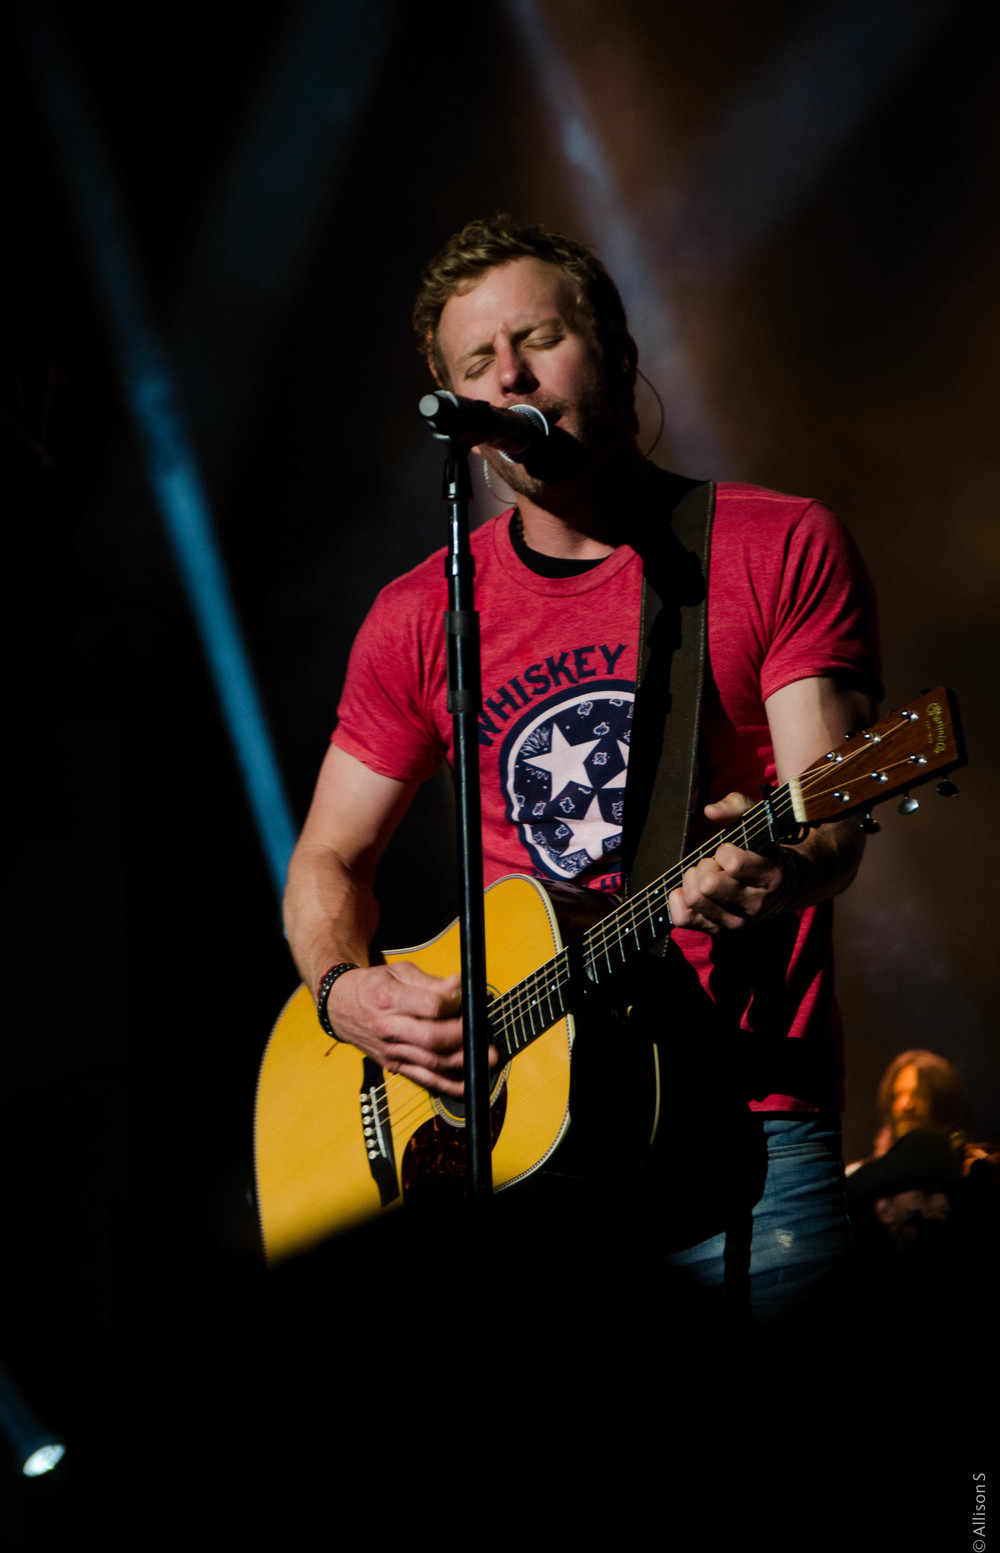 dierks-bentley_14408432545_o.jpg